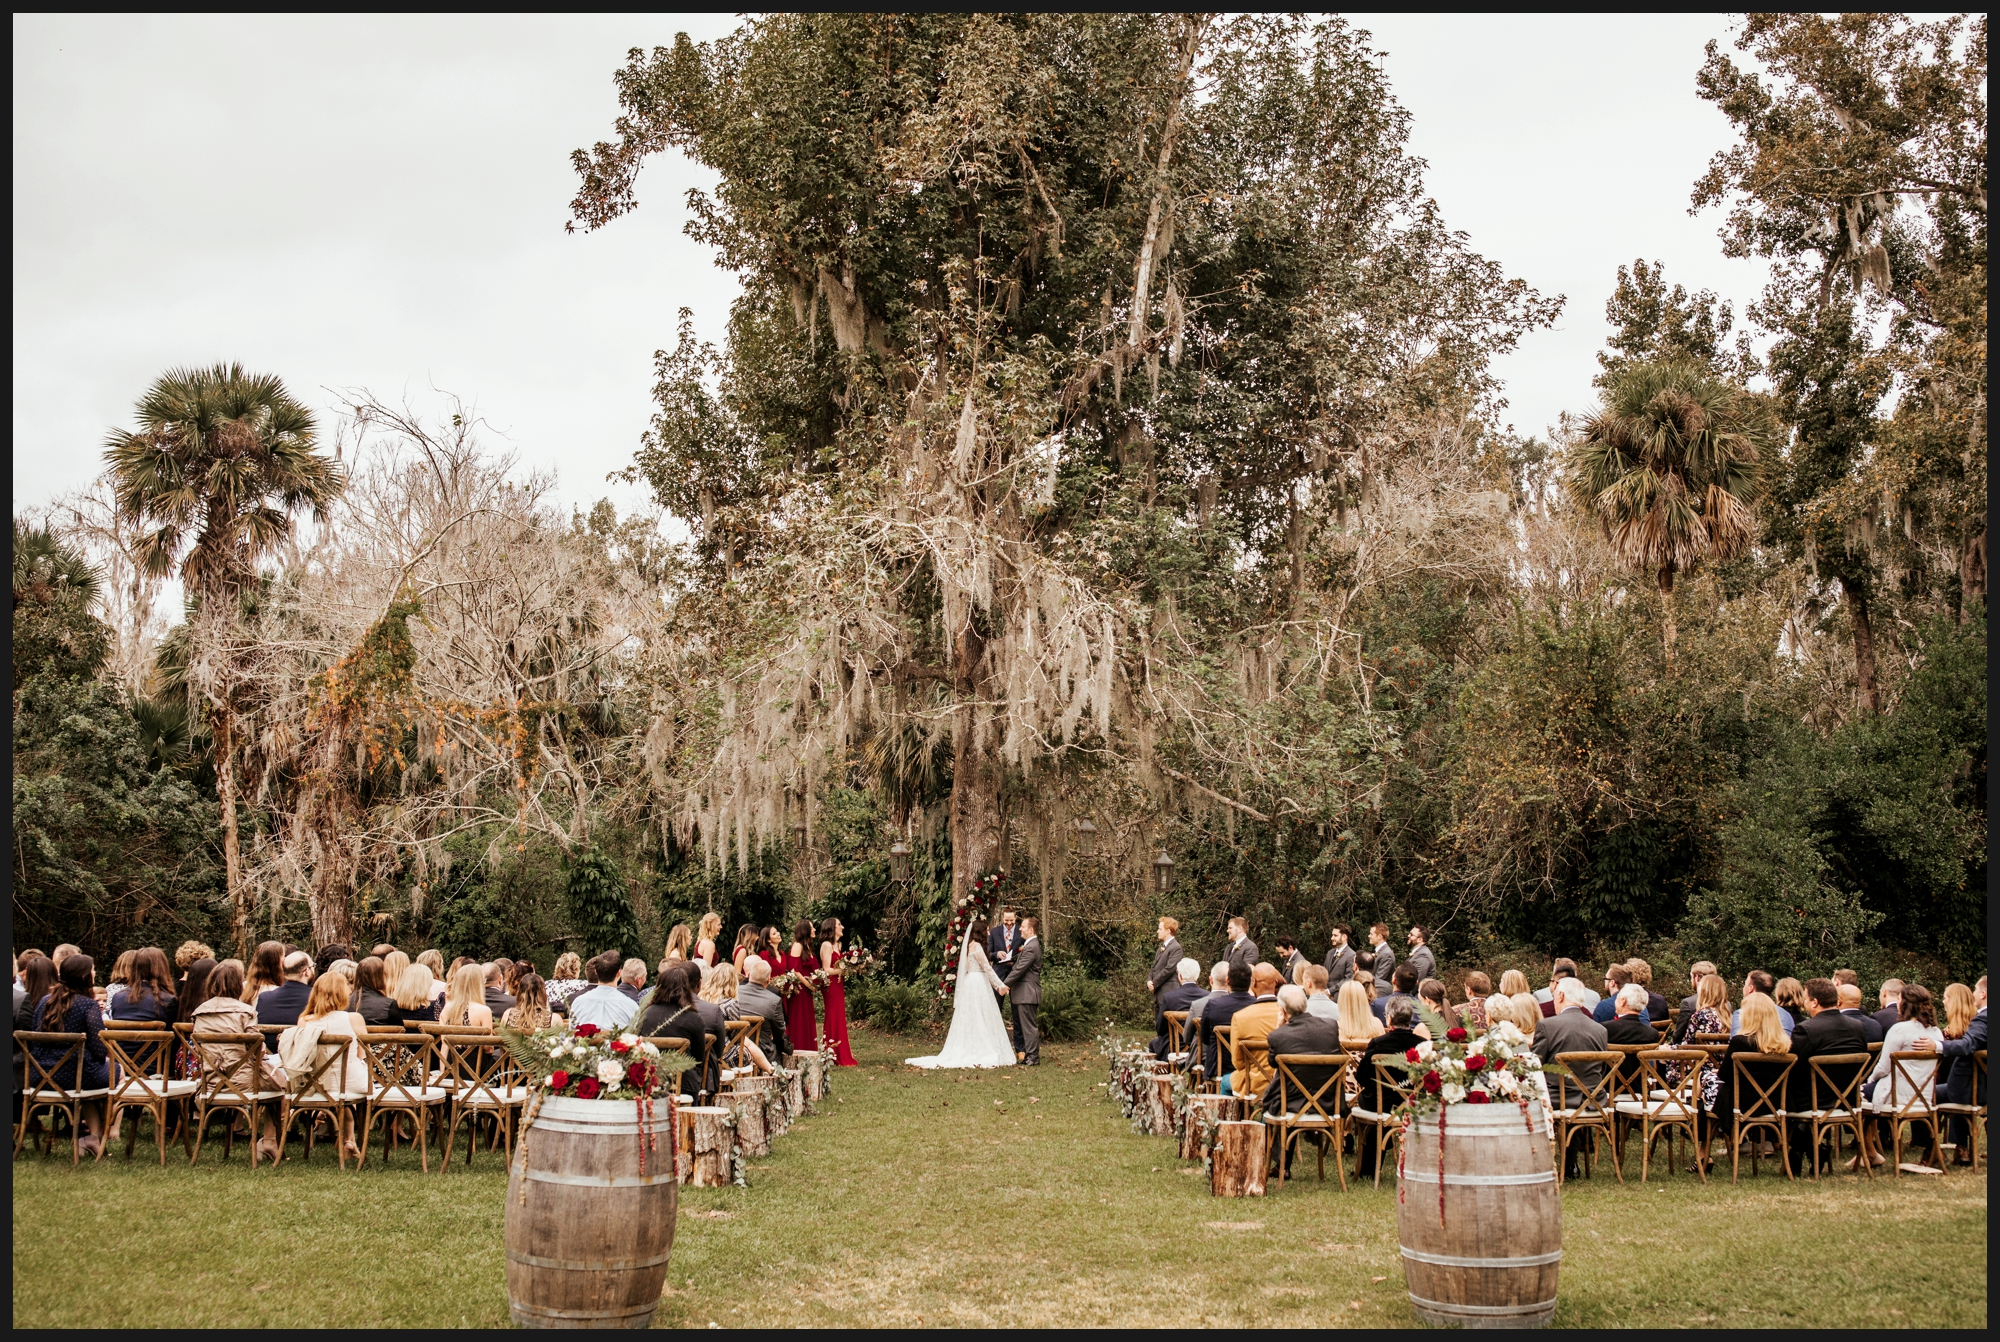 Orlando-Wedding-Photographer-destination-wedding-photographer-florida-wedding-photographer-hawaii-wedding-photographer_0522.jpg